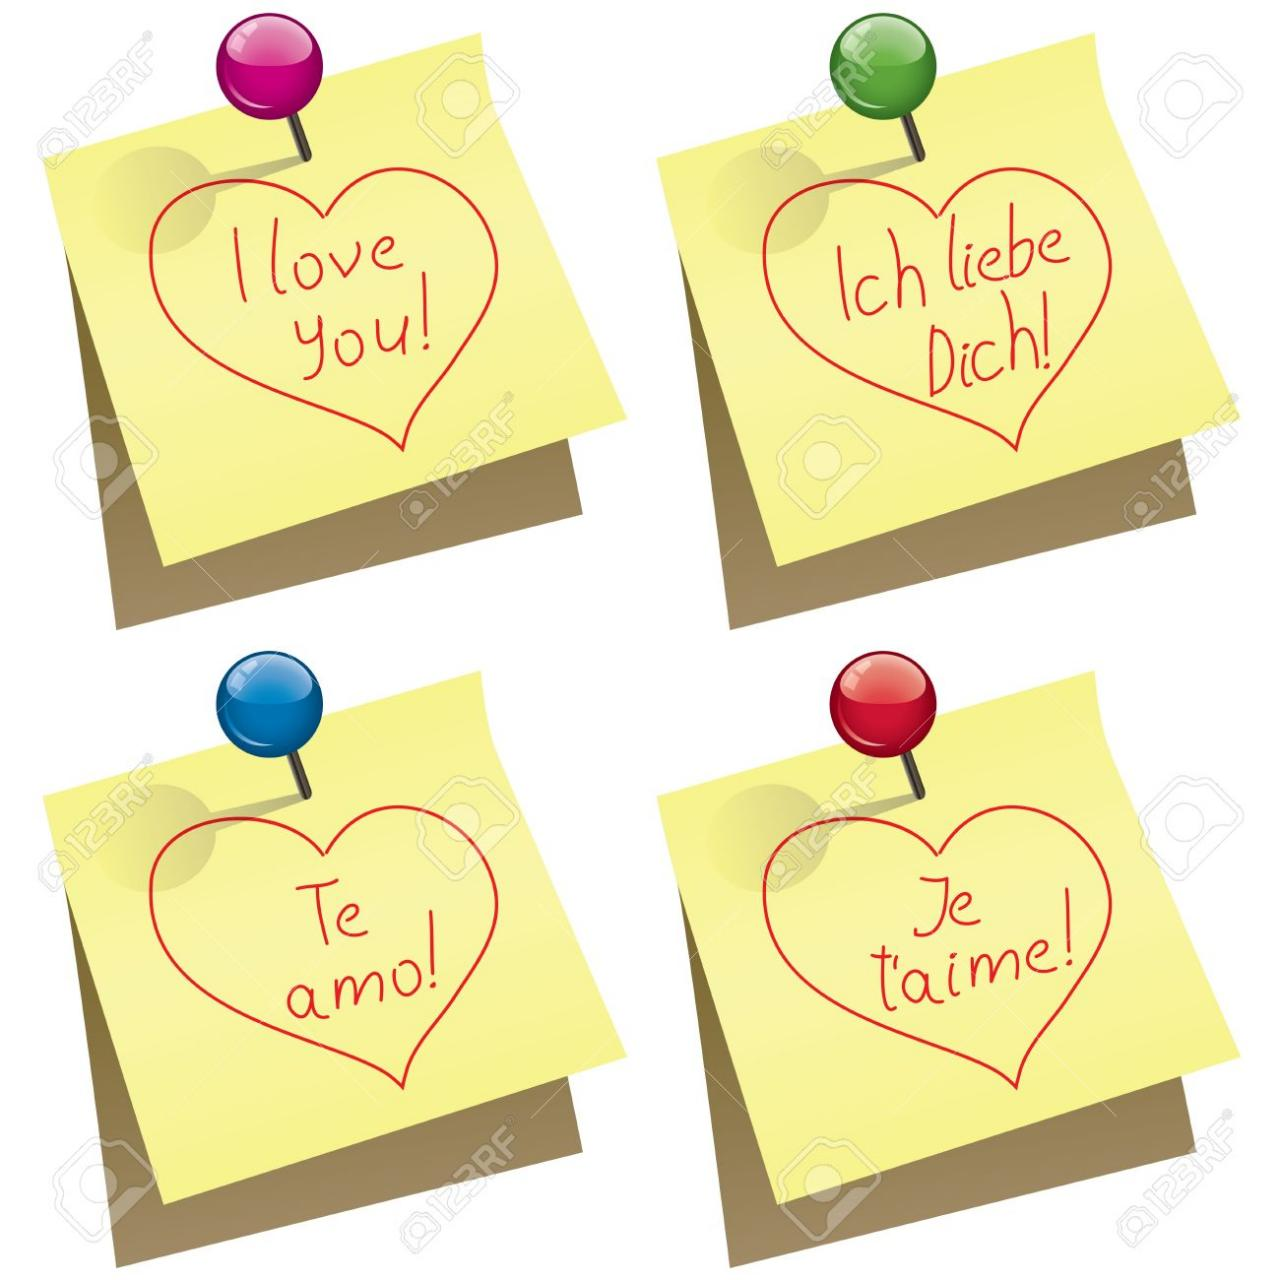 Vector Vector Yellow Paper Notes With Push Pin And I Love You Words In English German Spanish And French